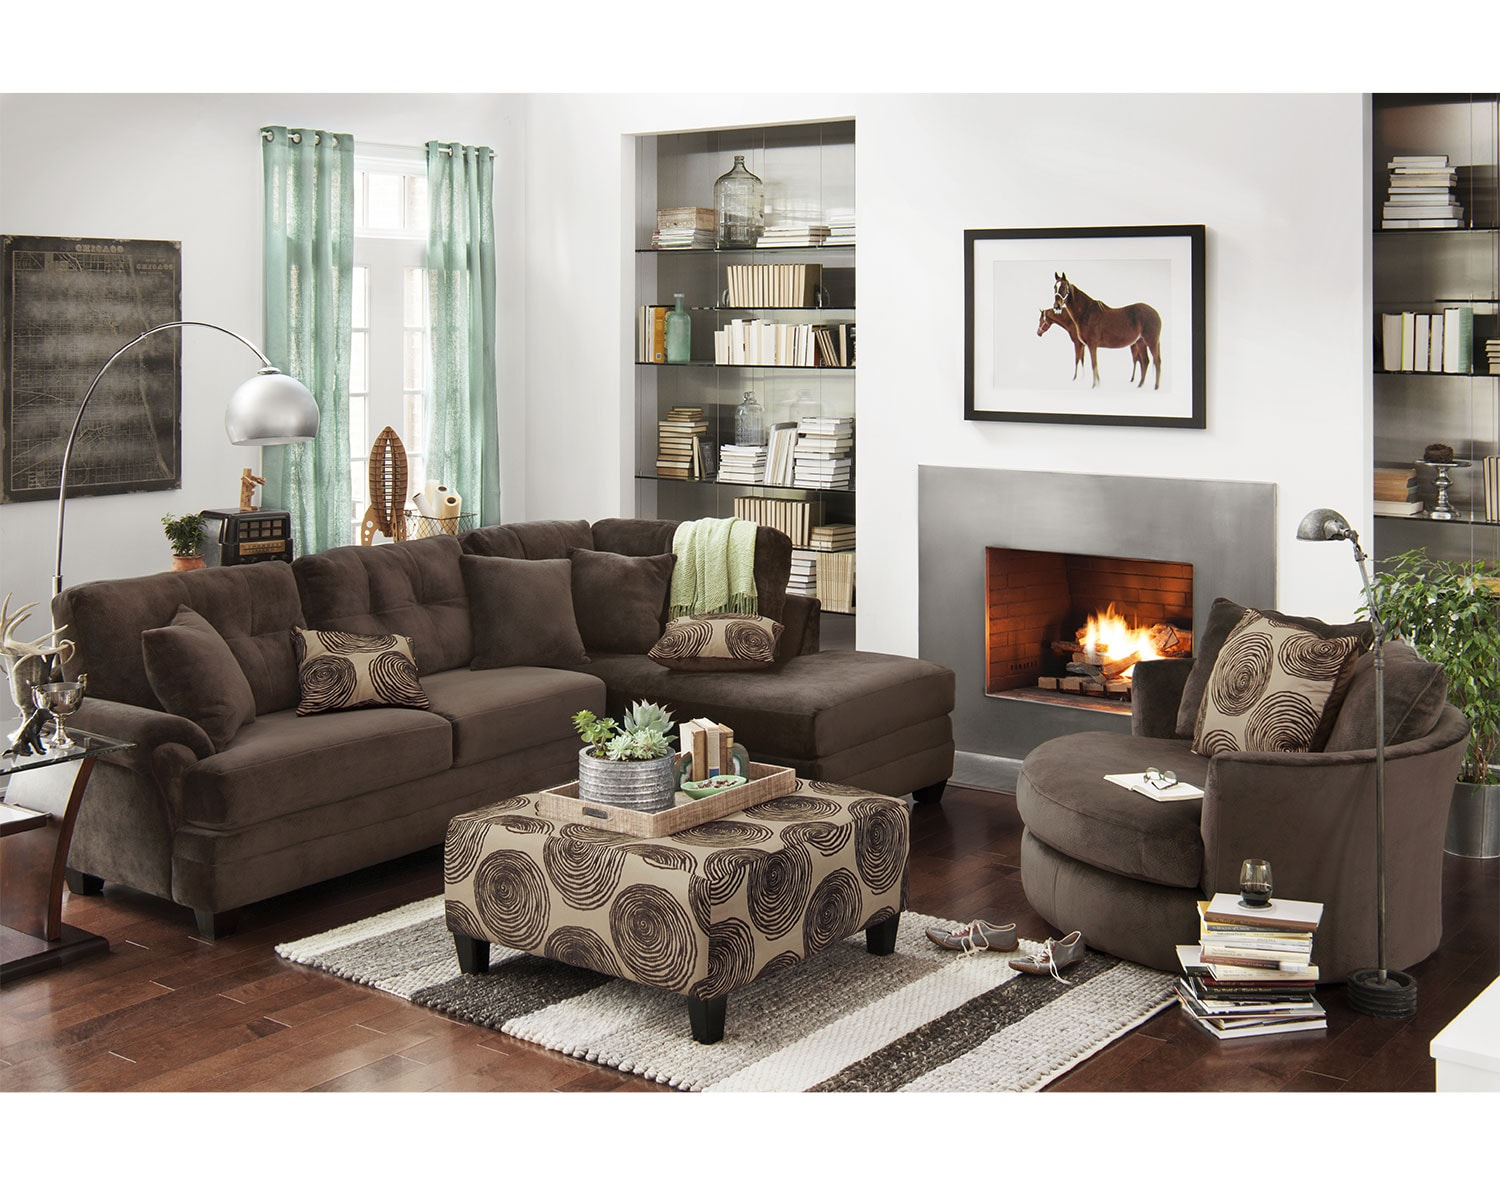 factory outlet home furniture | american signature furniture